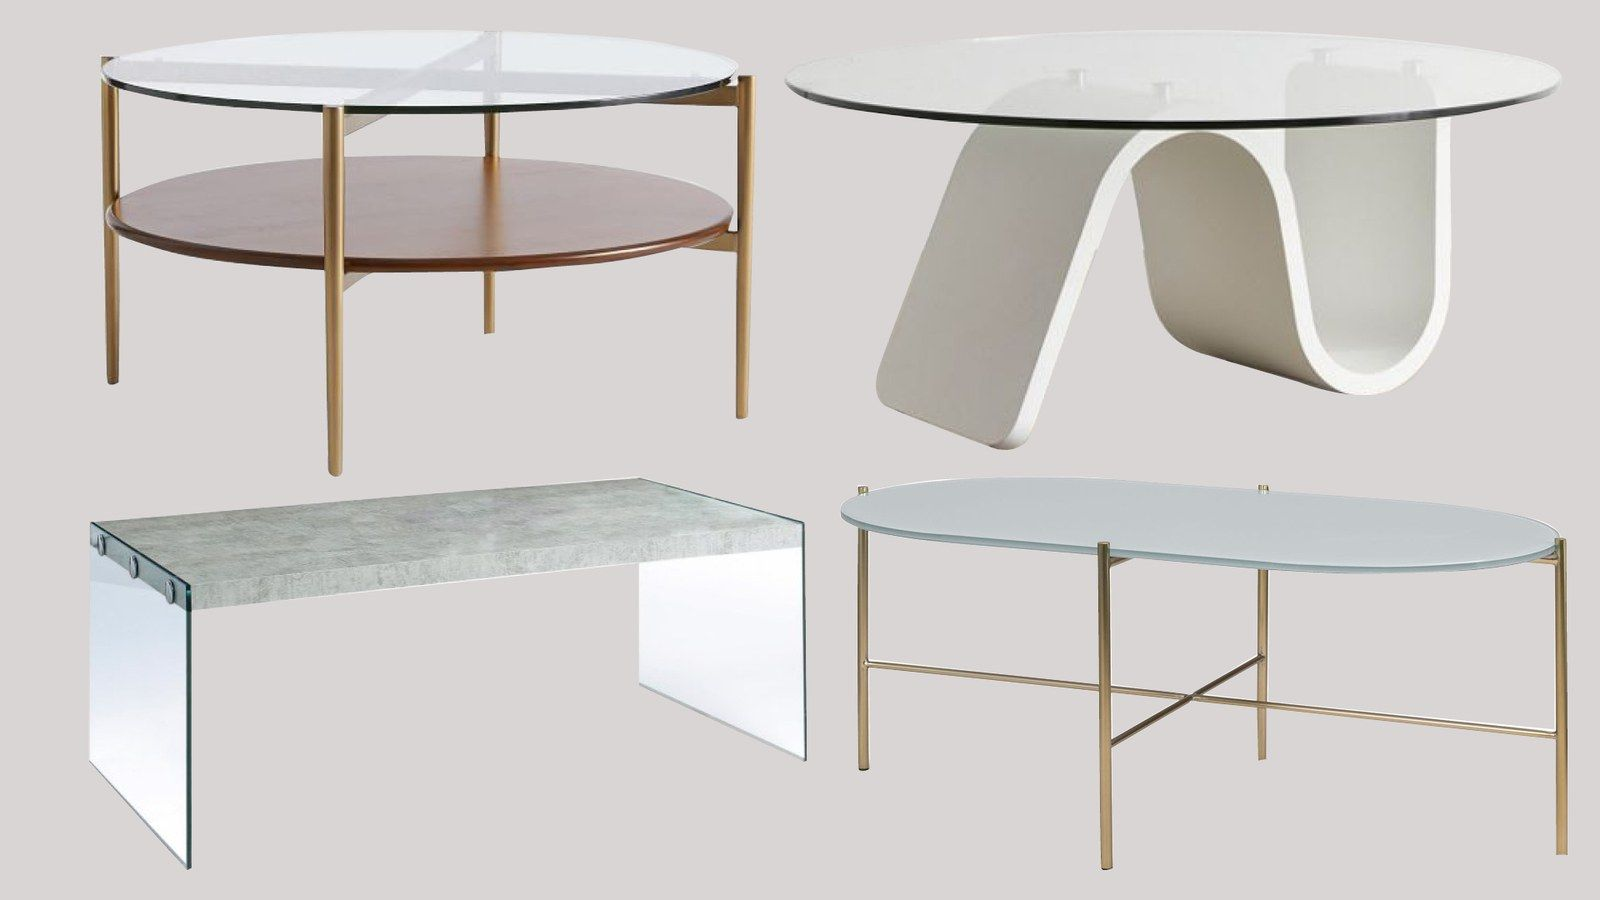 25 Glass Coffee Tables For Any And Every Living Room Coffee Table Glass Coffee Table Glass Table [ 900 x 1600 Pixel ]